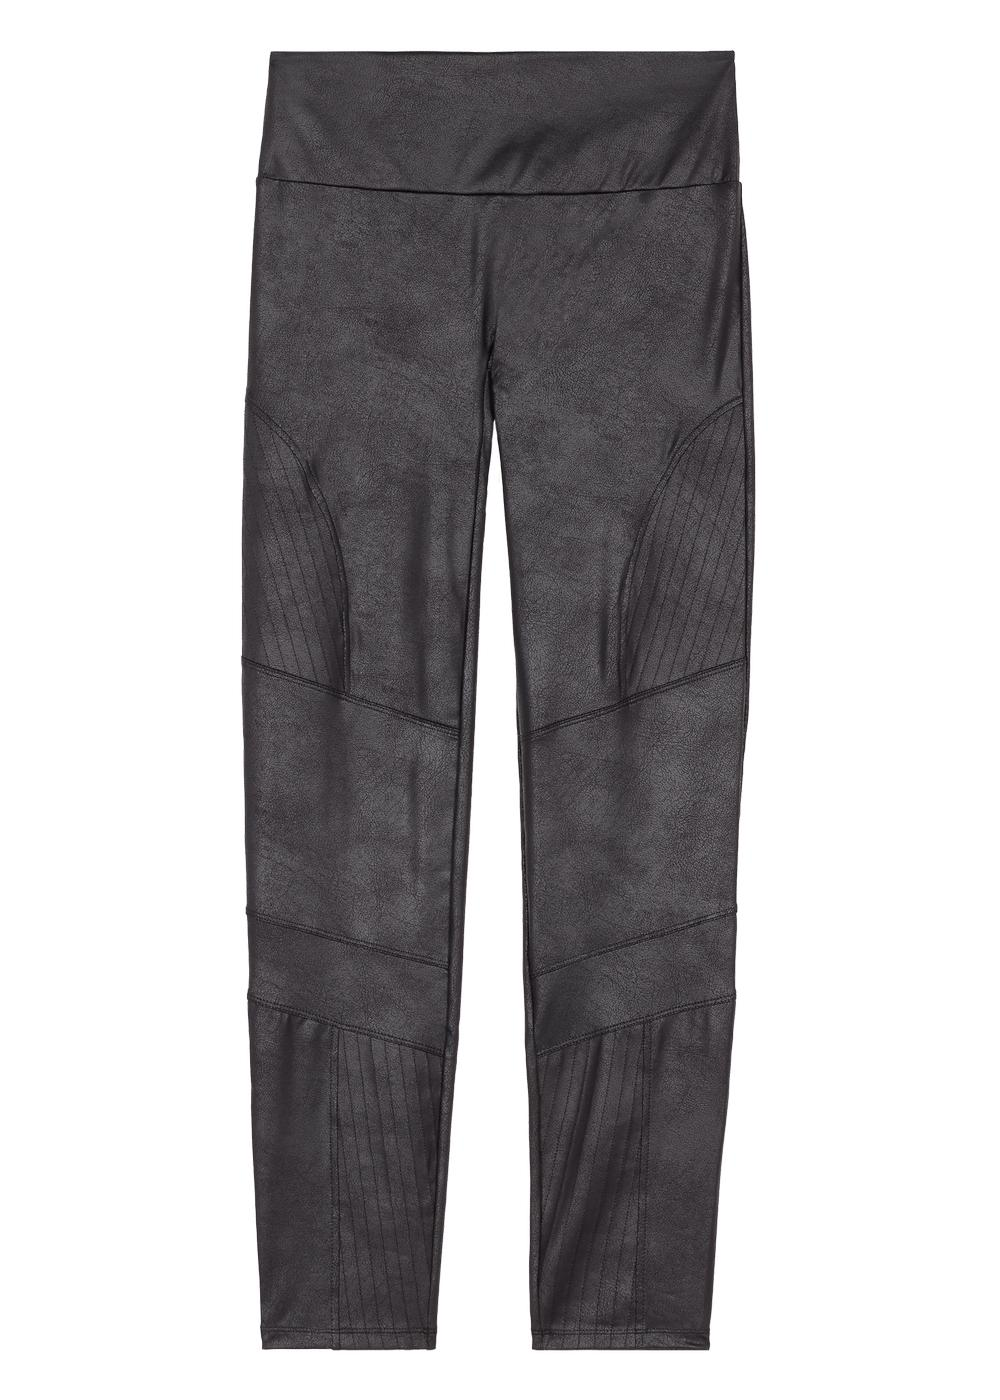 Leather-look total shaper biker leggings